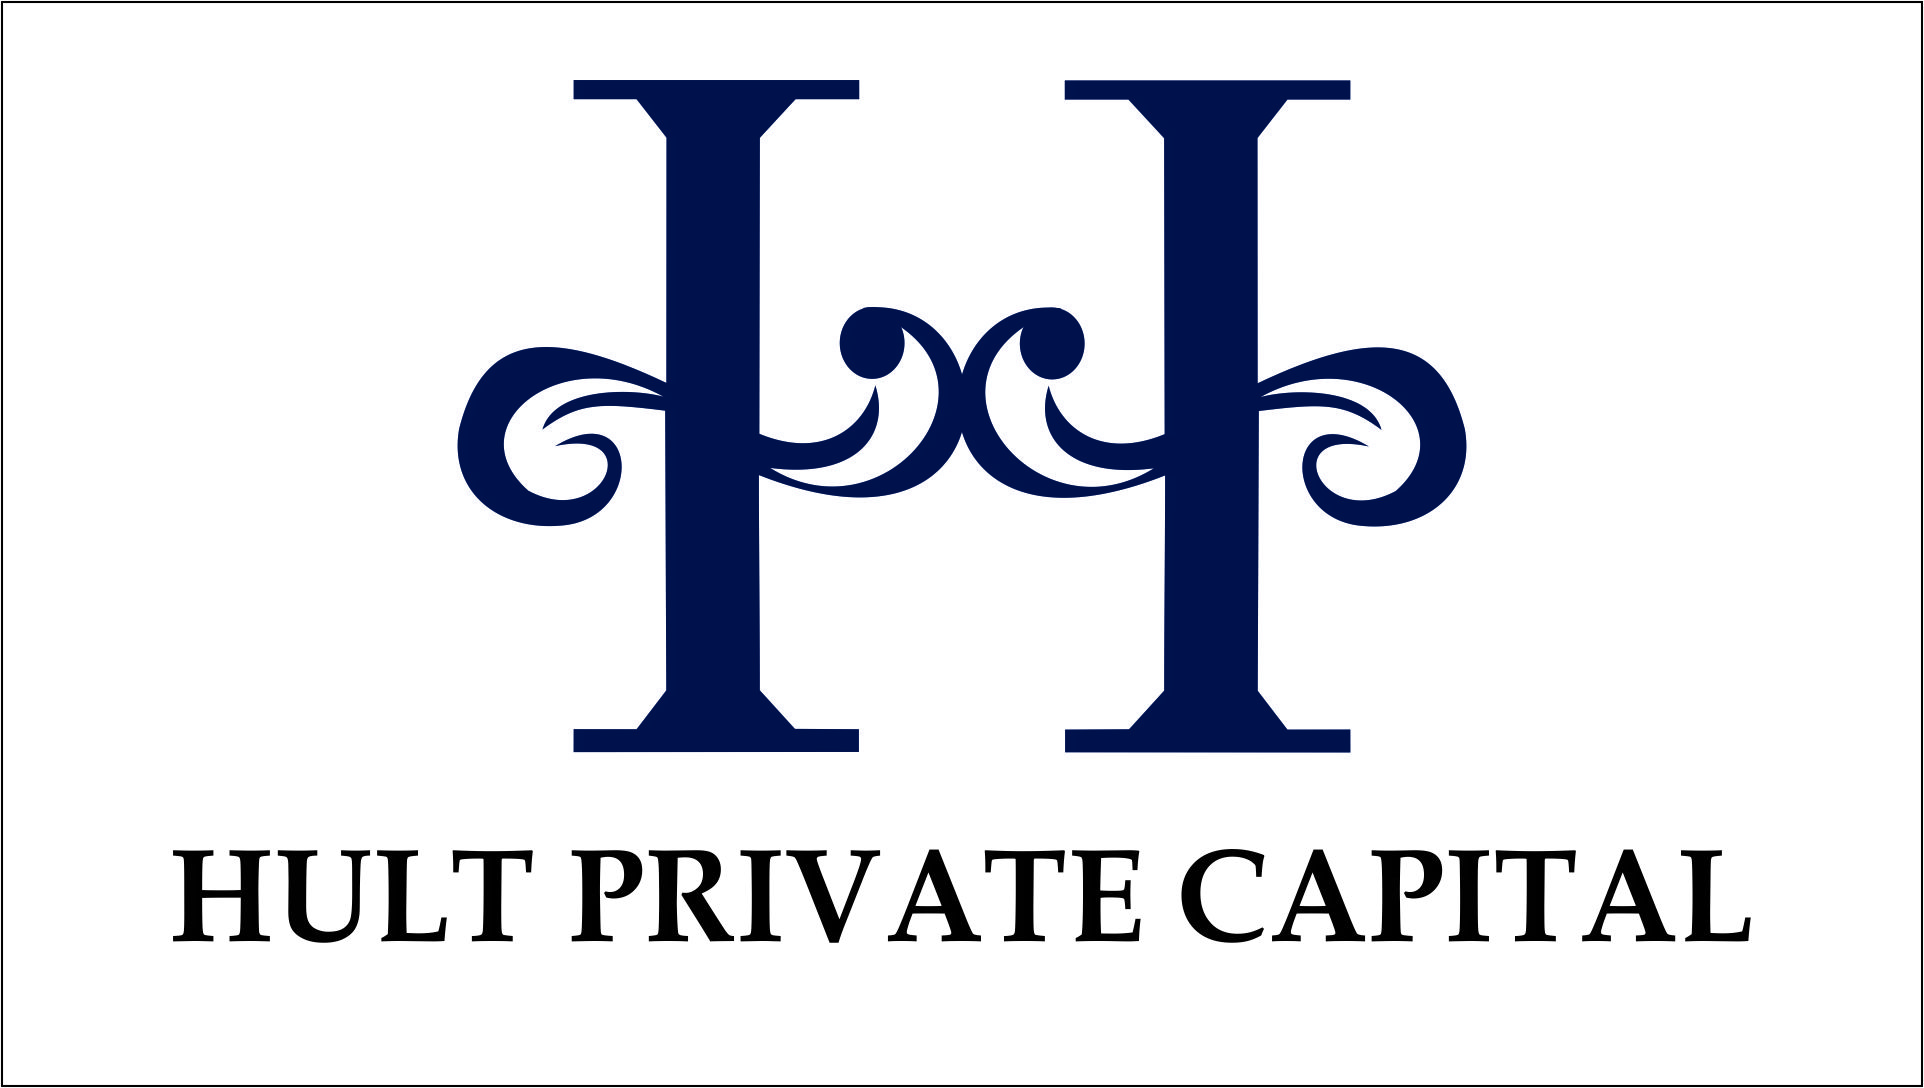 HULT PRIVATE CAPITAL.jpg